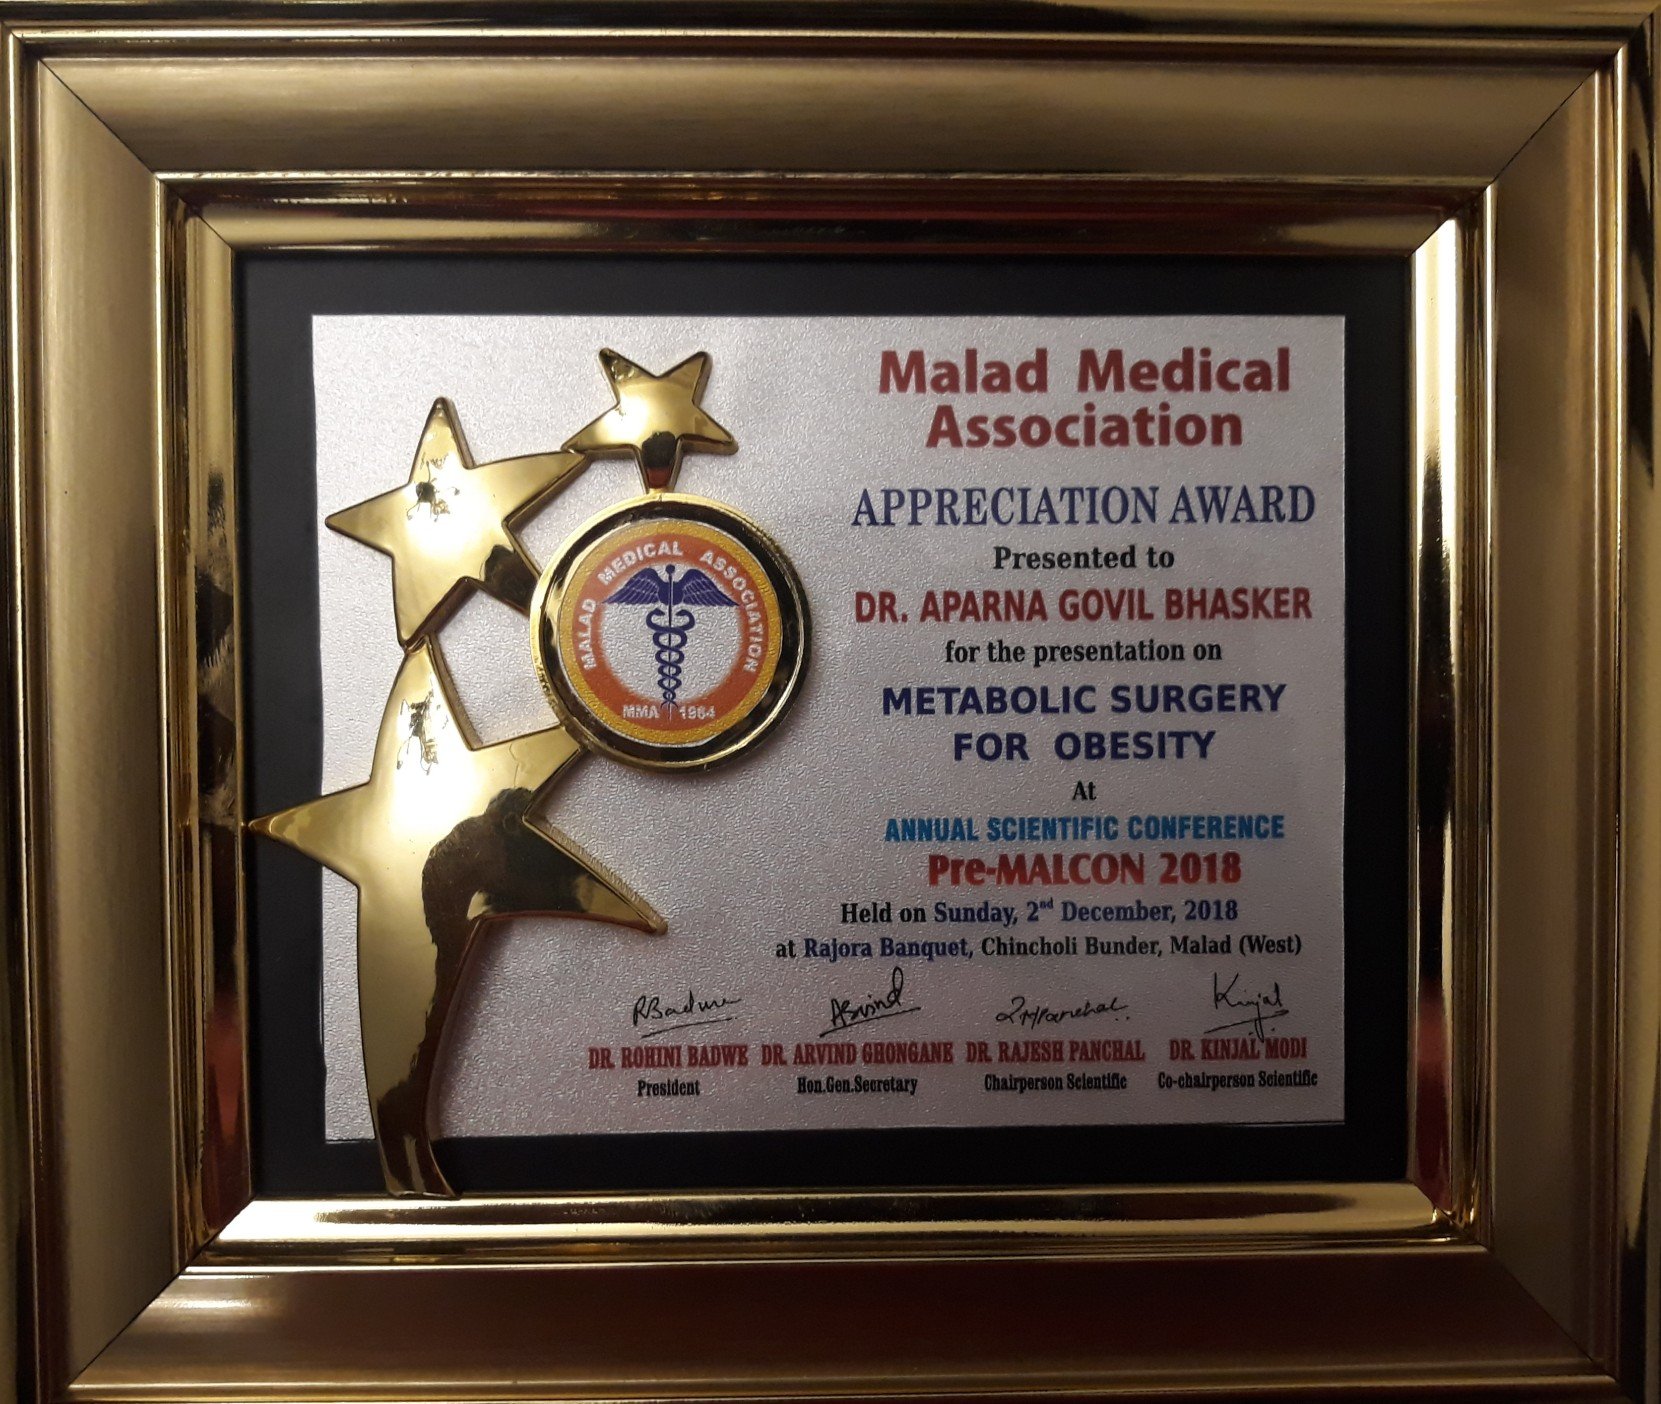 Honoured to have spoken on Metabolic surgery for treatment of obesity at PRE MALCON in Malad Medical Association on 2nd December 2018 (1)